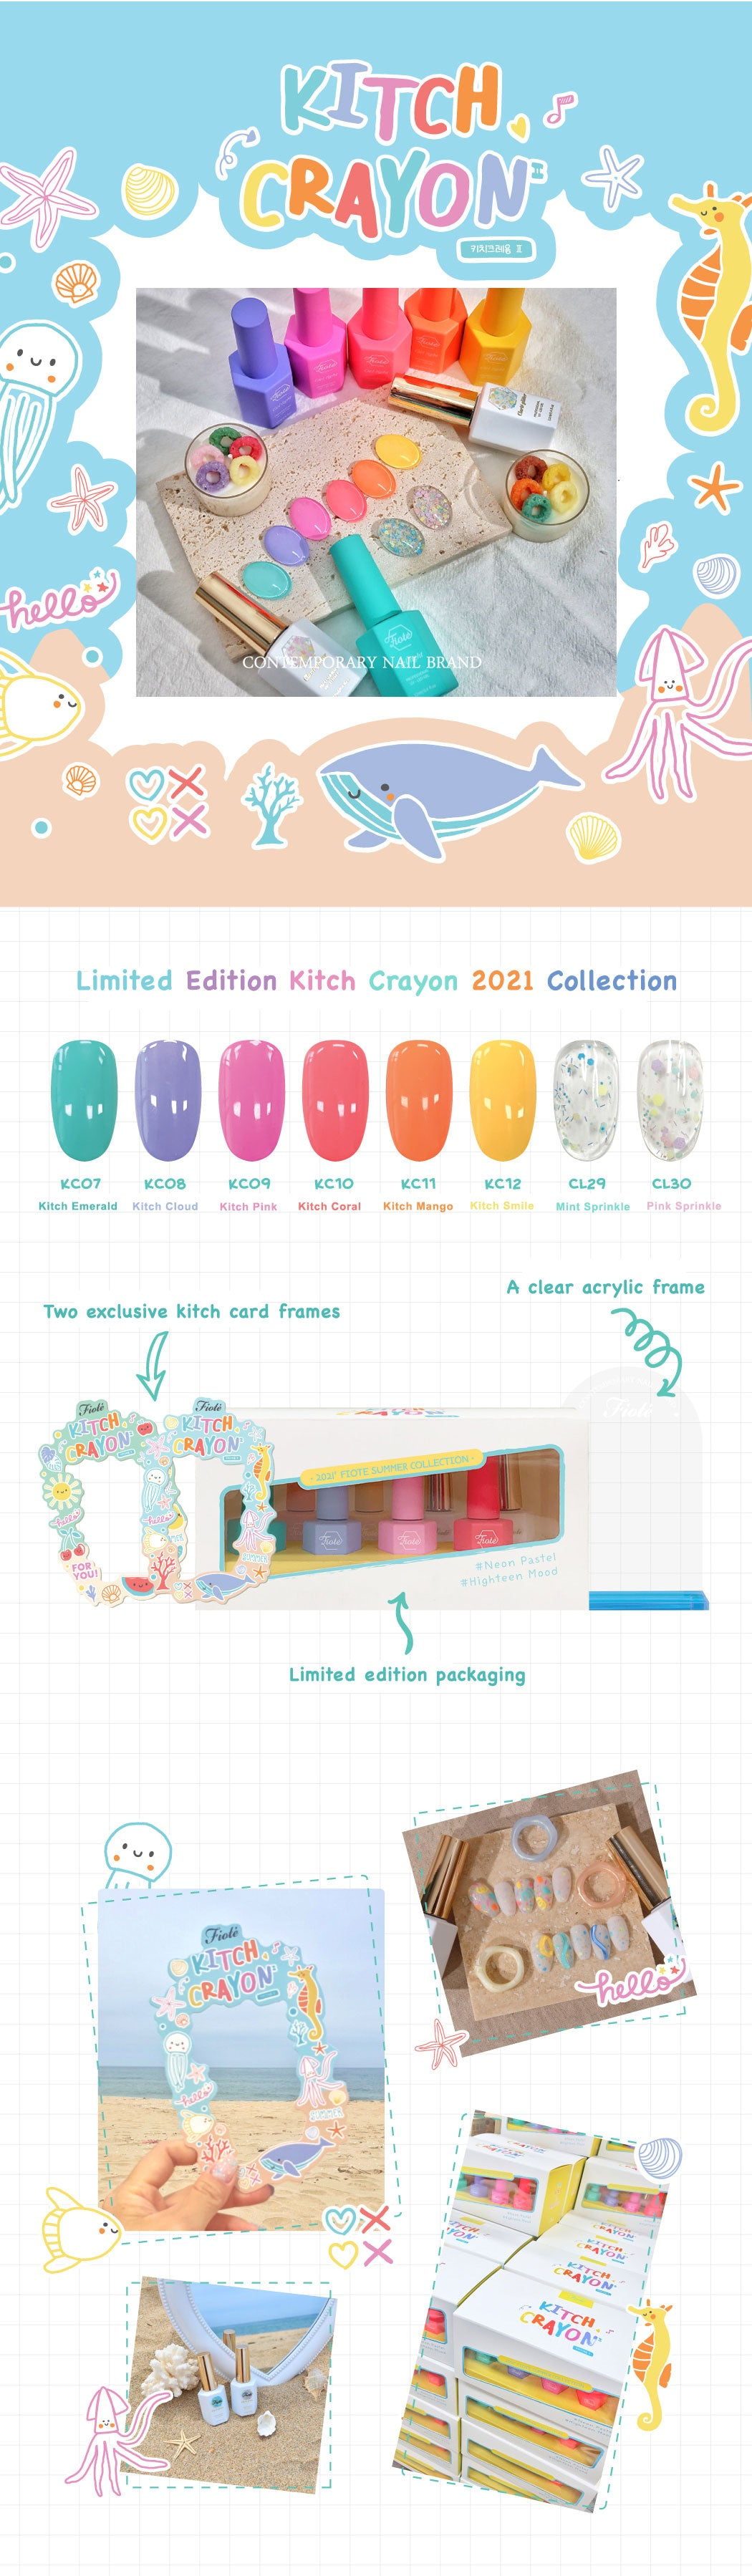 Fiote Kitch Crayon 2021 Collection - 8 Color Set